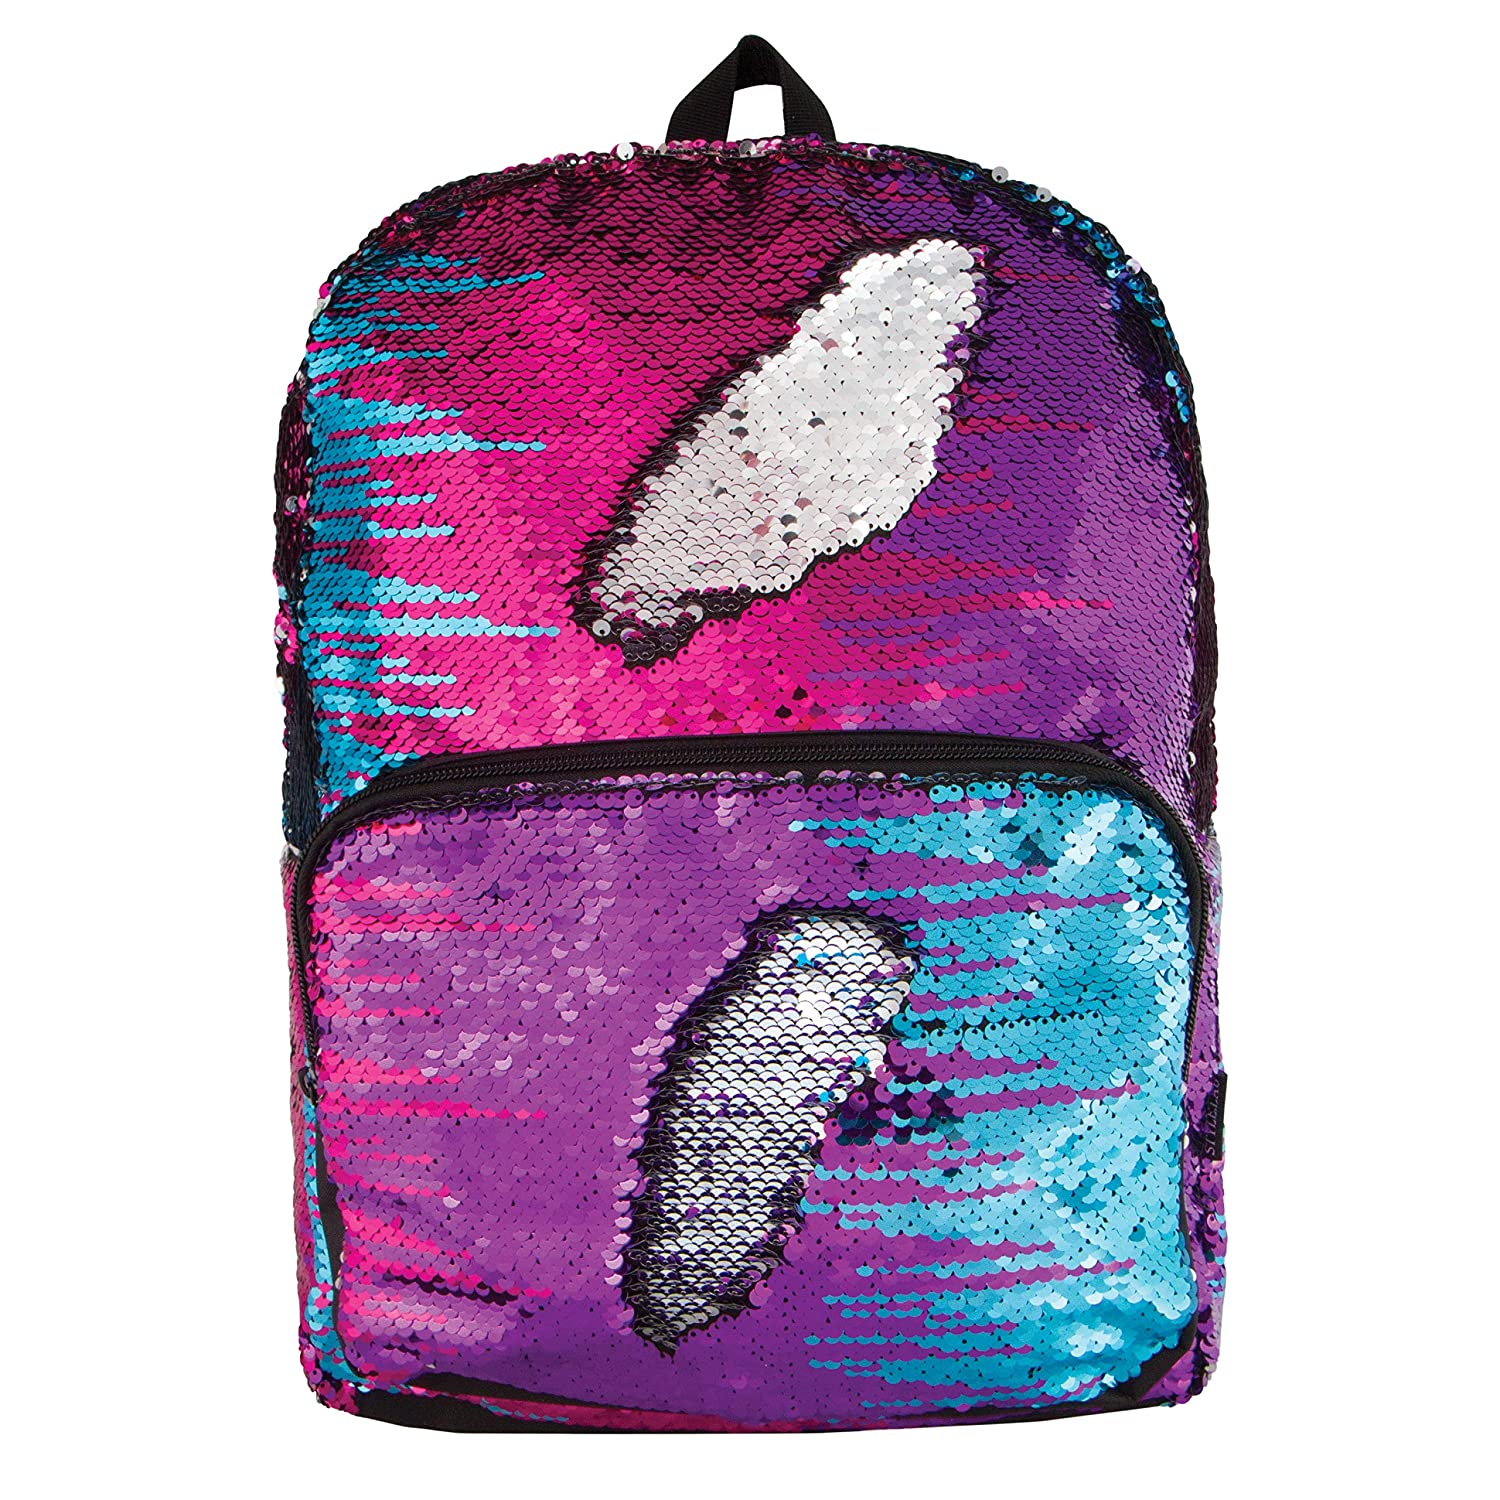 Amazon.com: Style.Lab Fashion Angels Magic Sequin Backpack - Multi/Silver: Toys & Games